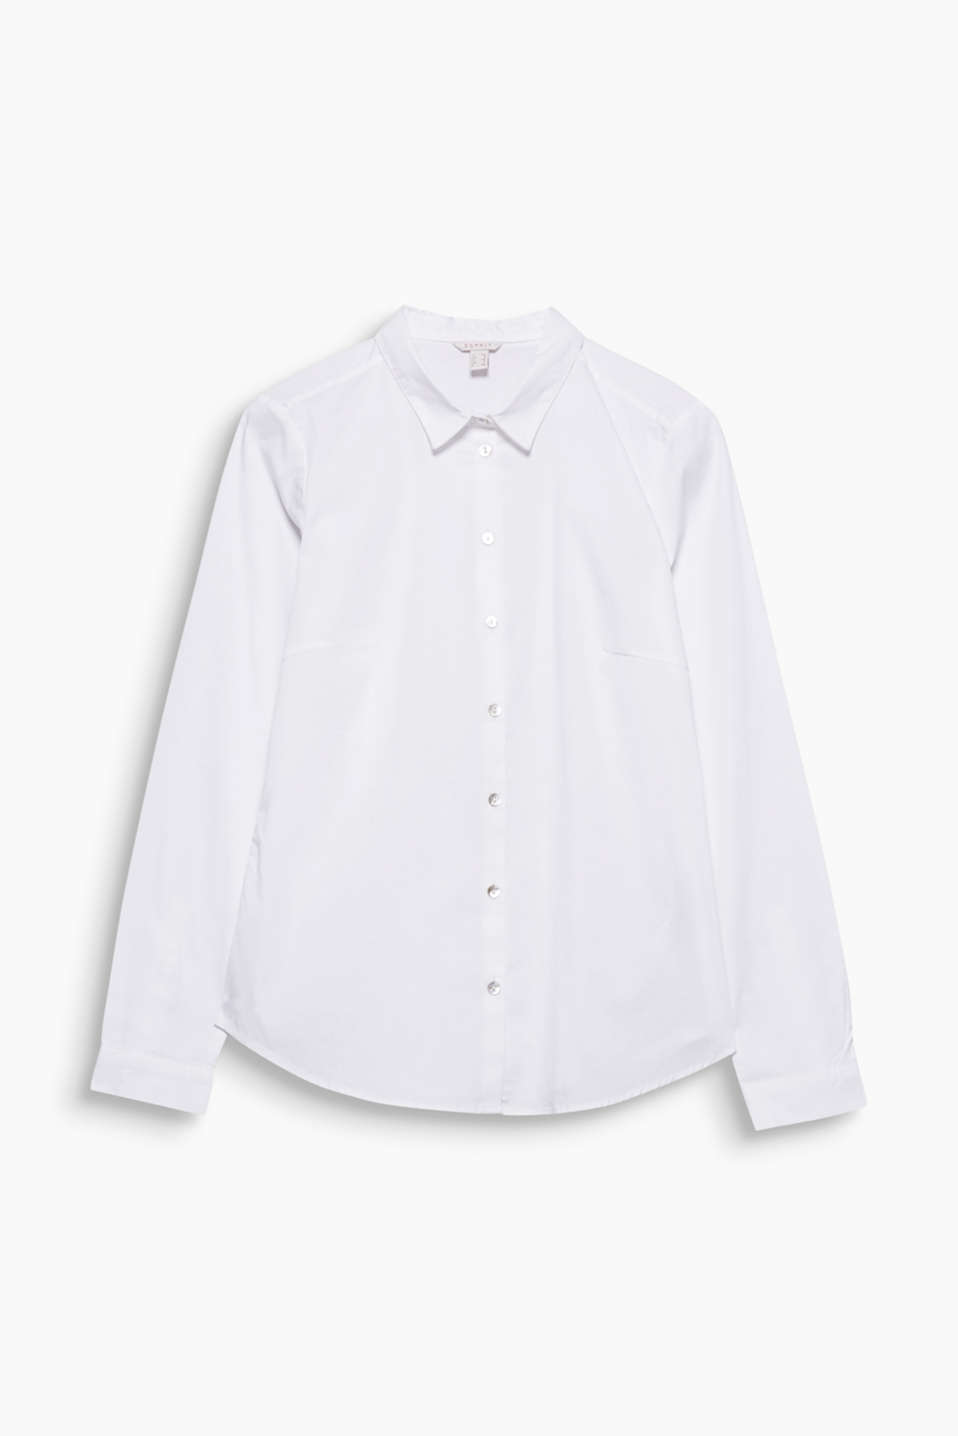 A fashion essential that no wardrobe should be without: this classic, fitted blouse.